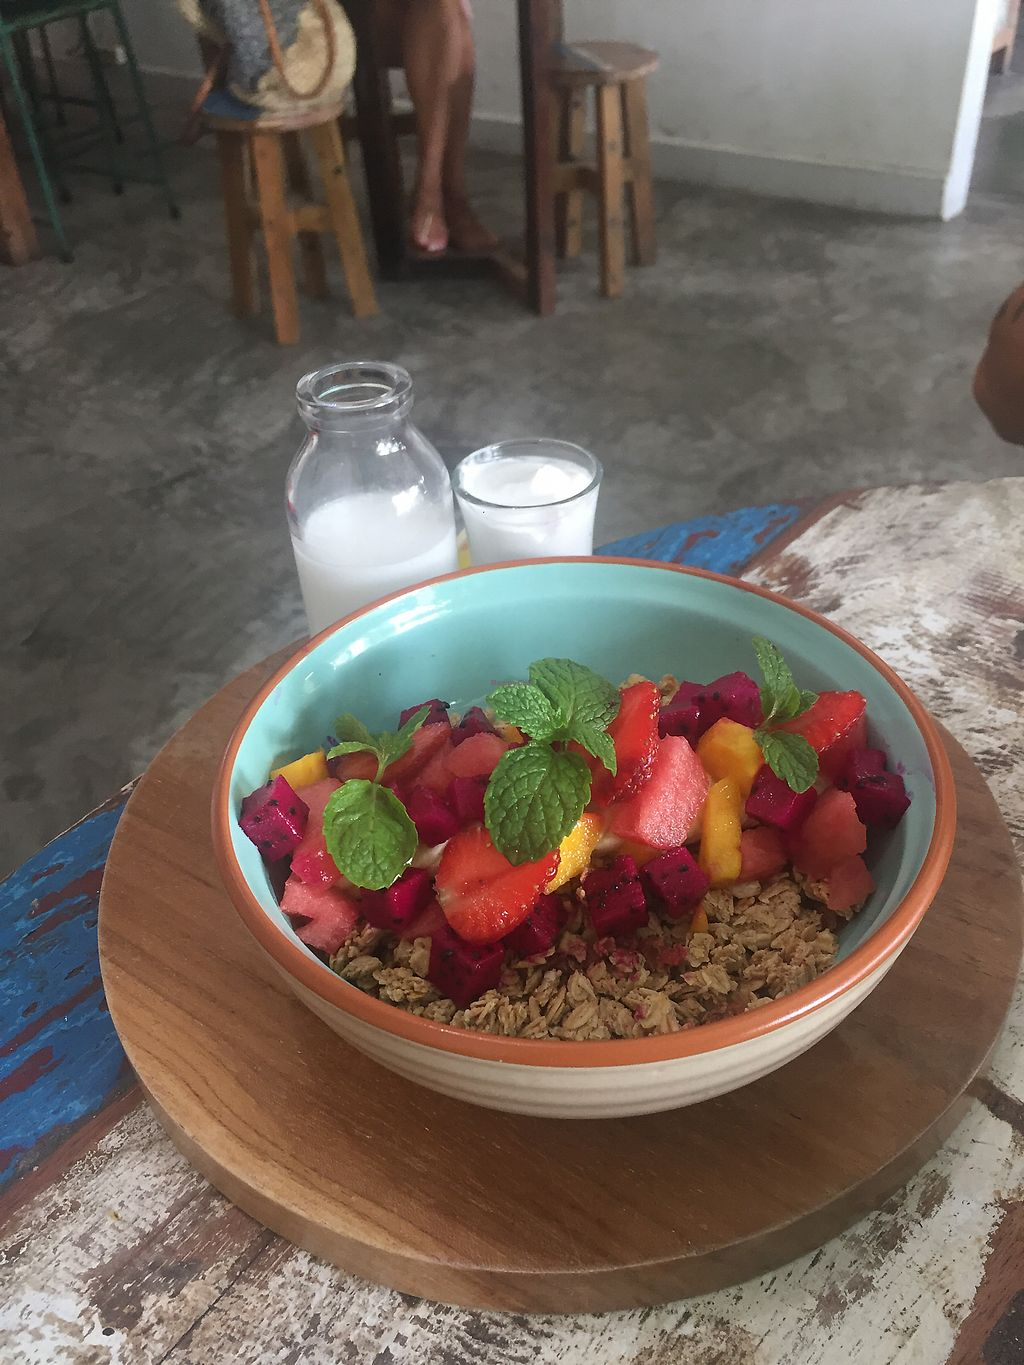 """Photo of CLOSED: The Spicy Coconut  by <a href=""""/members/profile/auroreFR"""">auroreFR</a> <br/>granola mix (wonderful with soy and coconut Milk) <br/> August 21, 2017  - <a href='/contact/abuse/image/73419/295046'>Report</a>"""